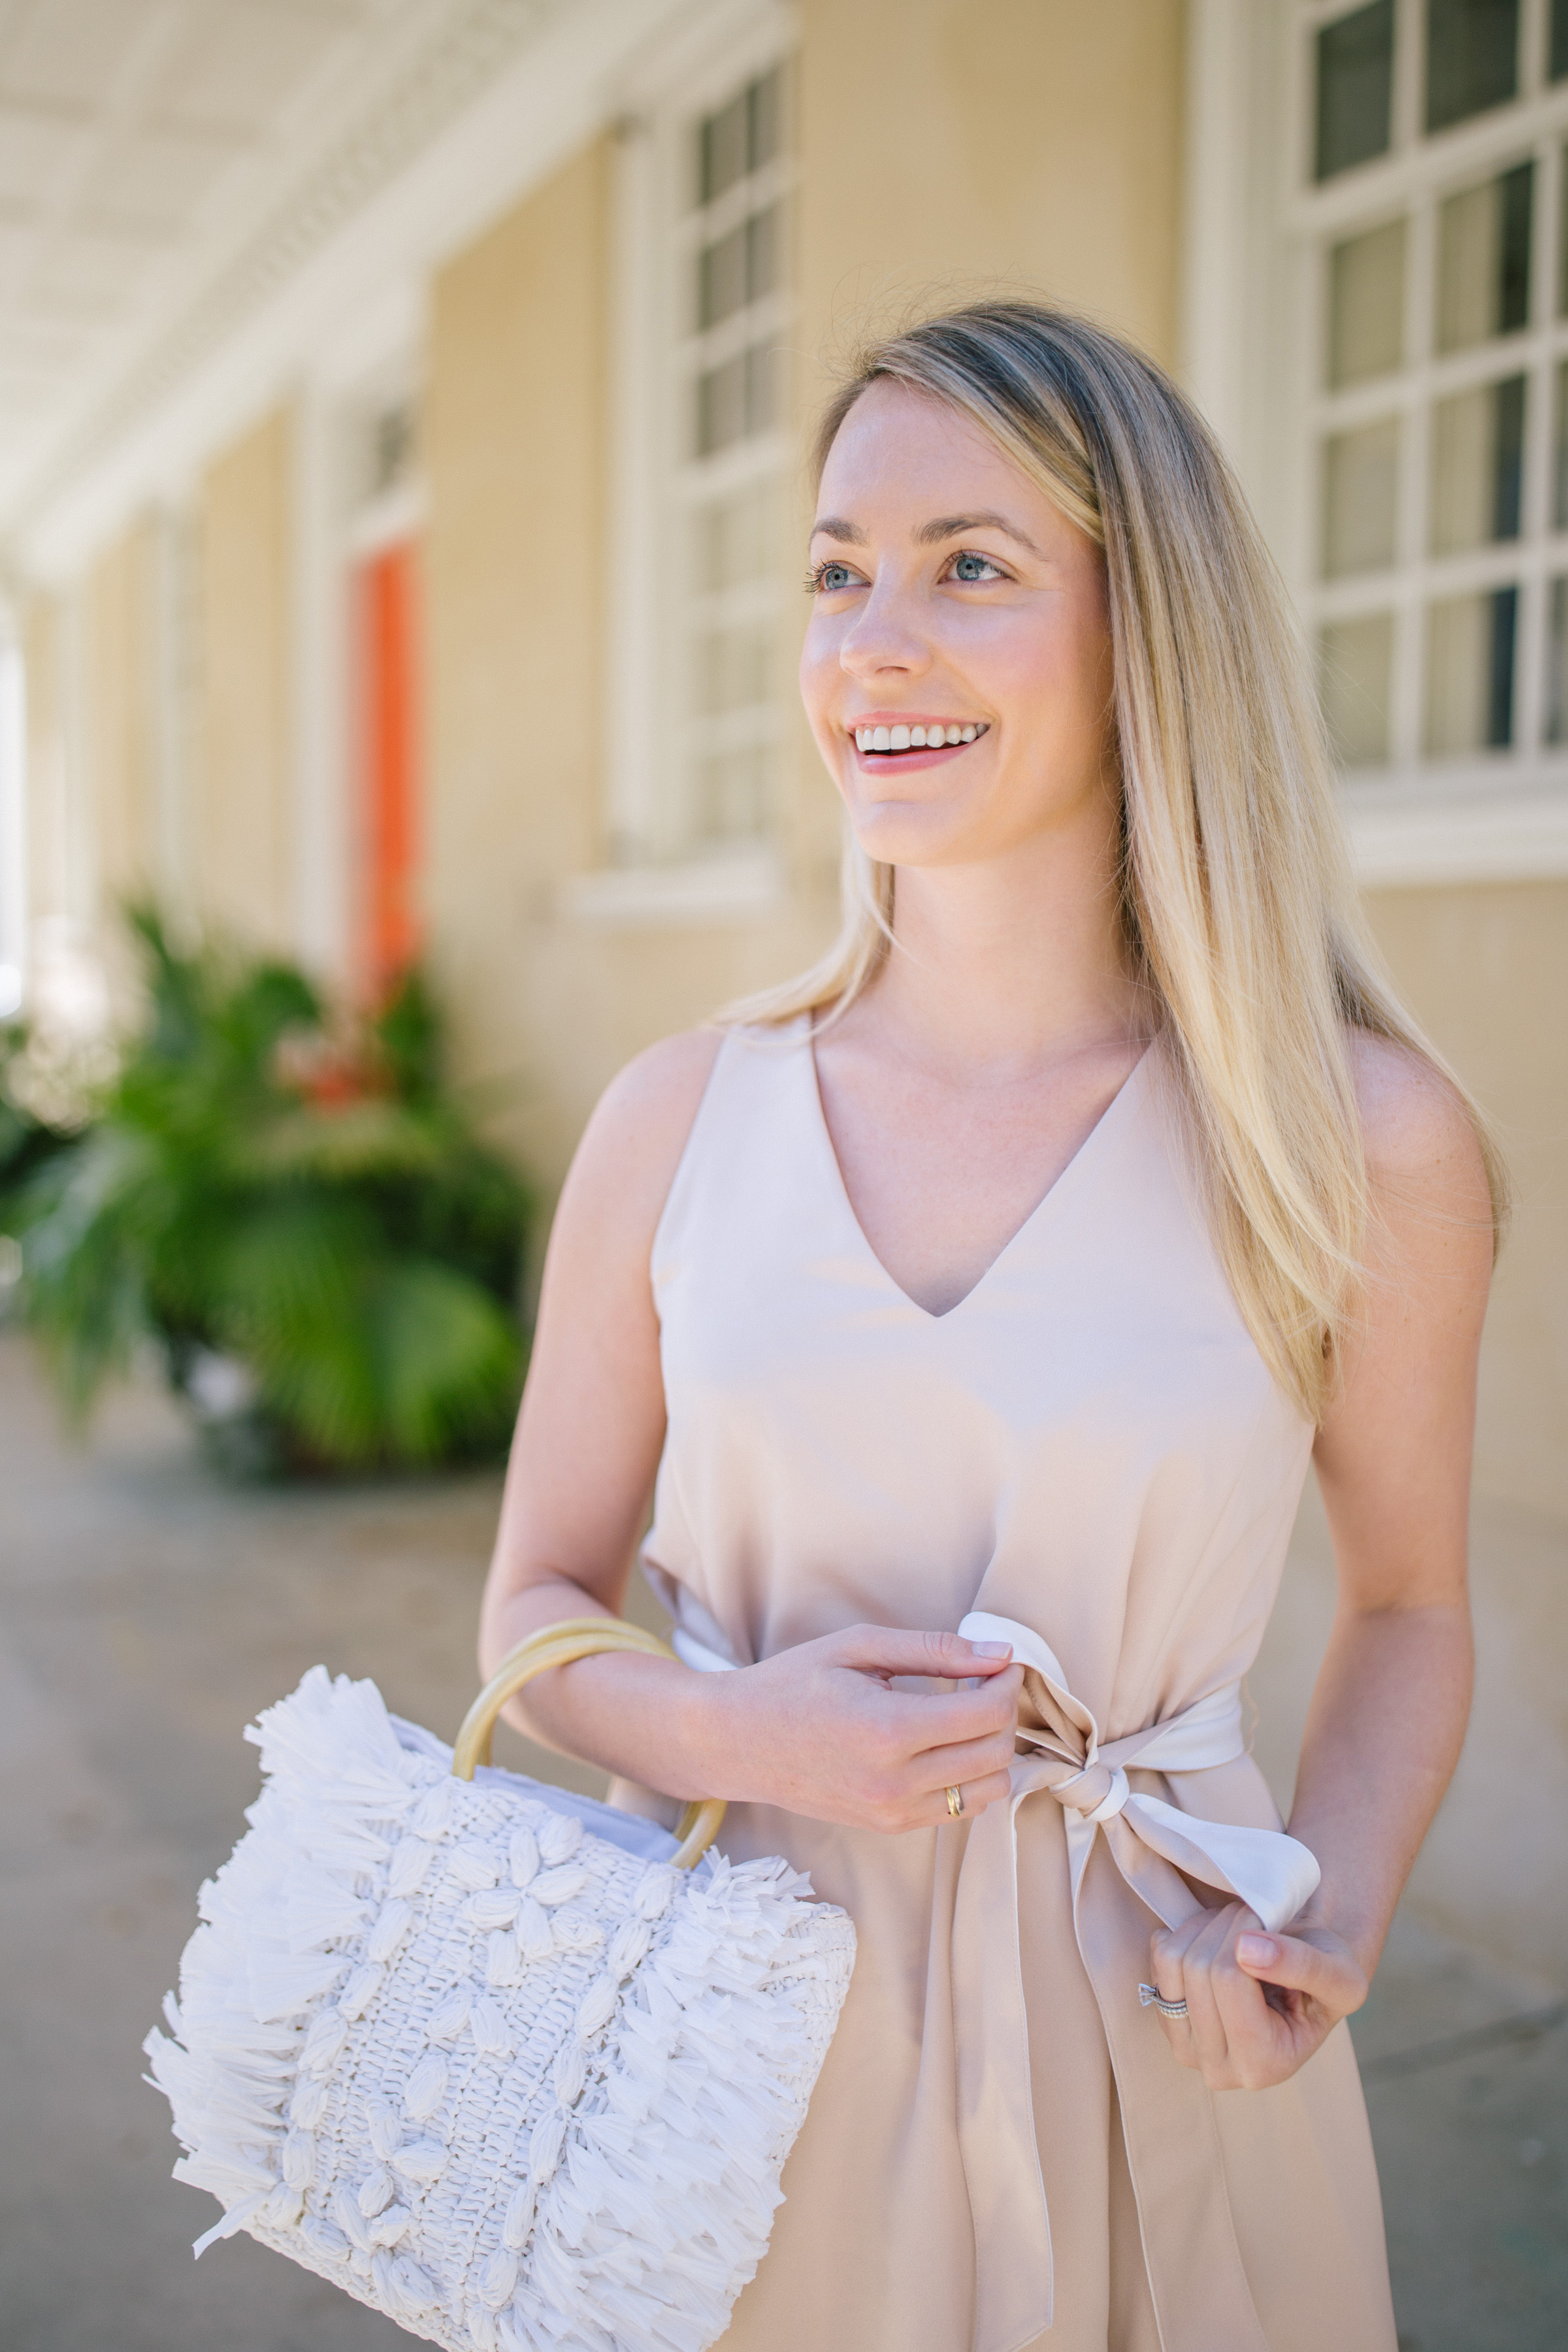 Start Spring In Style With This Neutral Outfit Idea   Rhyme & Reason